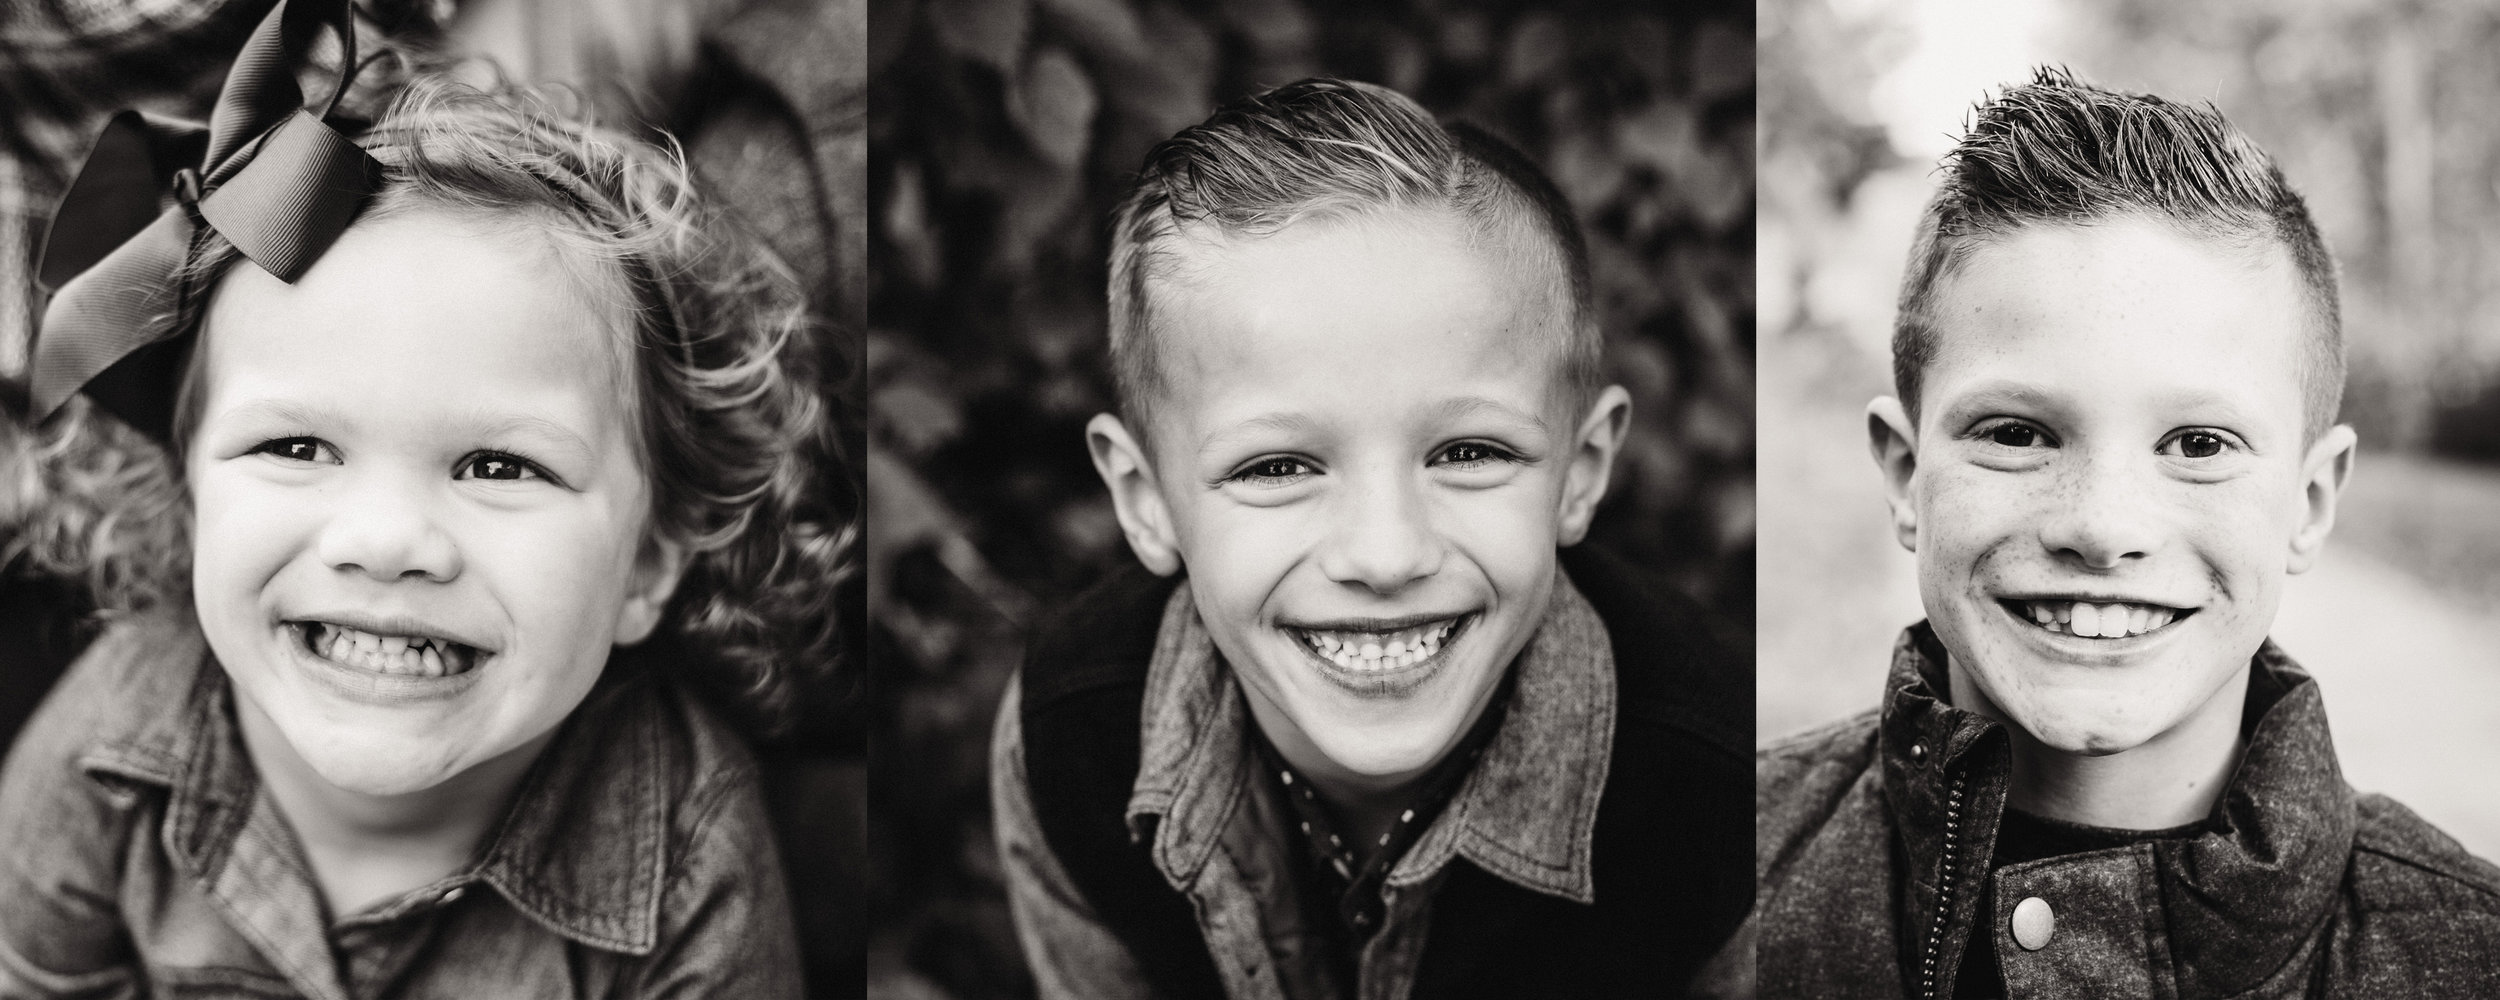 black and white children portraits